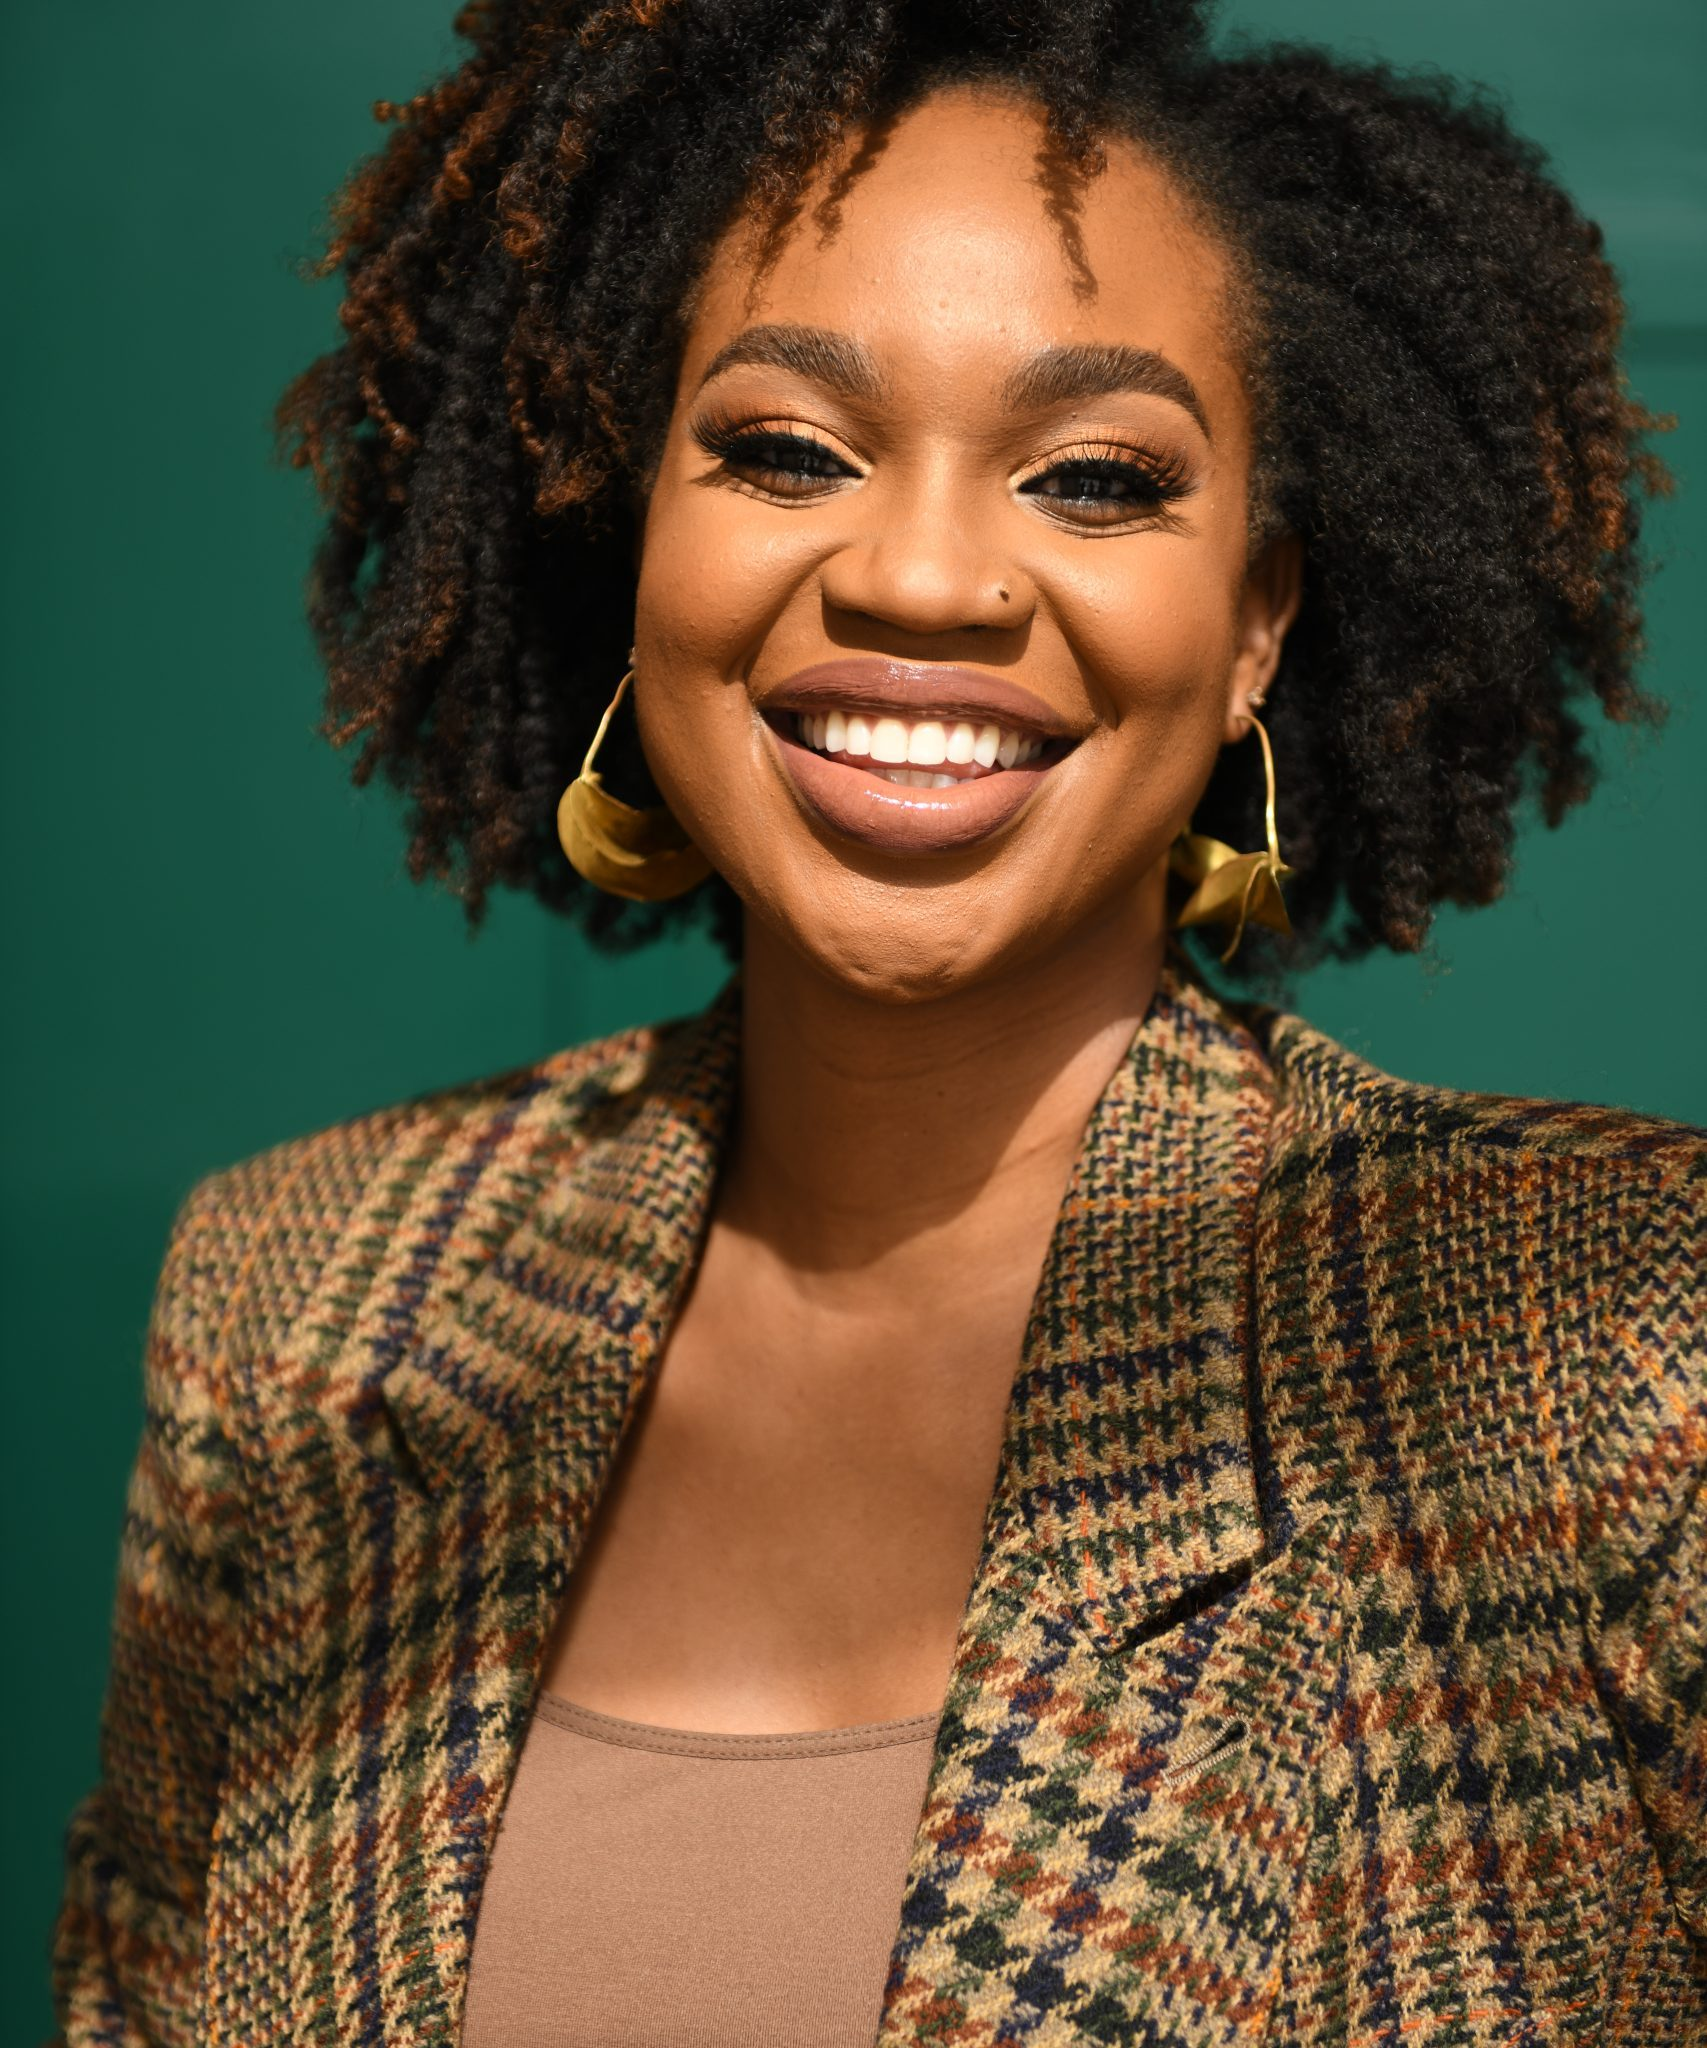 Ijeoma Kola headshot on green background - hairstyles for black women